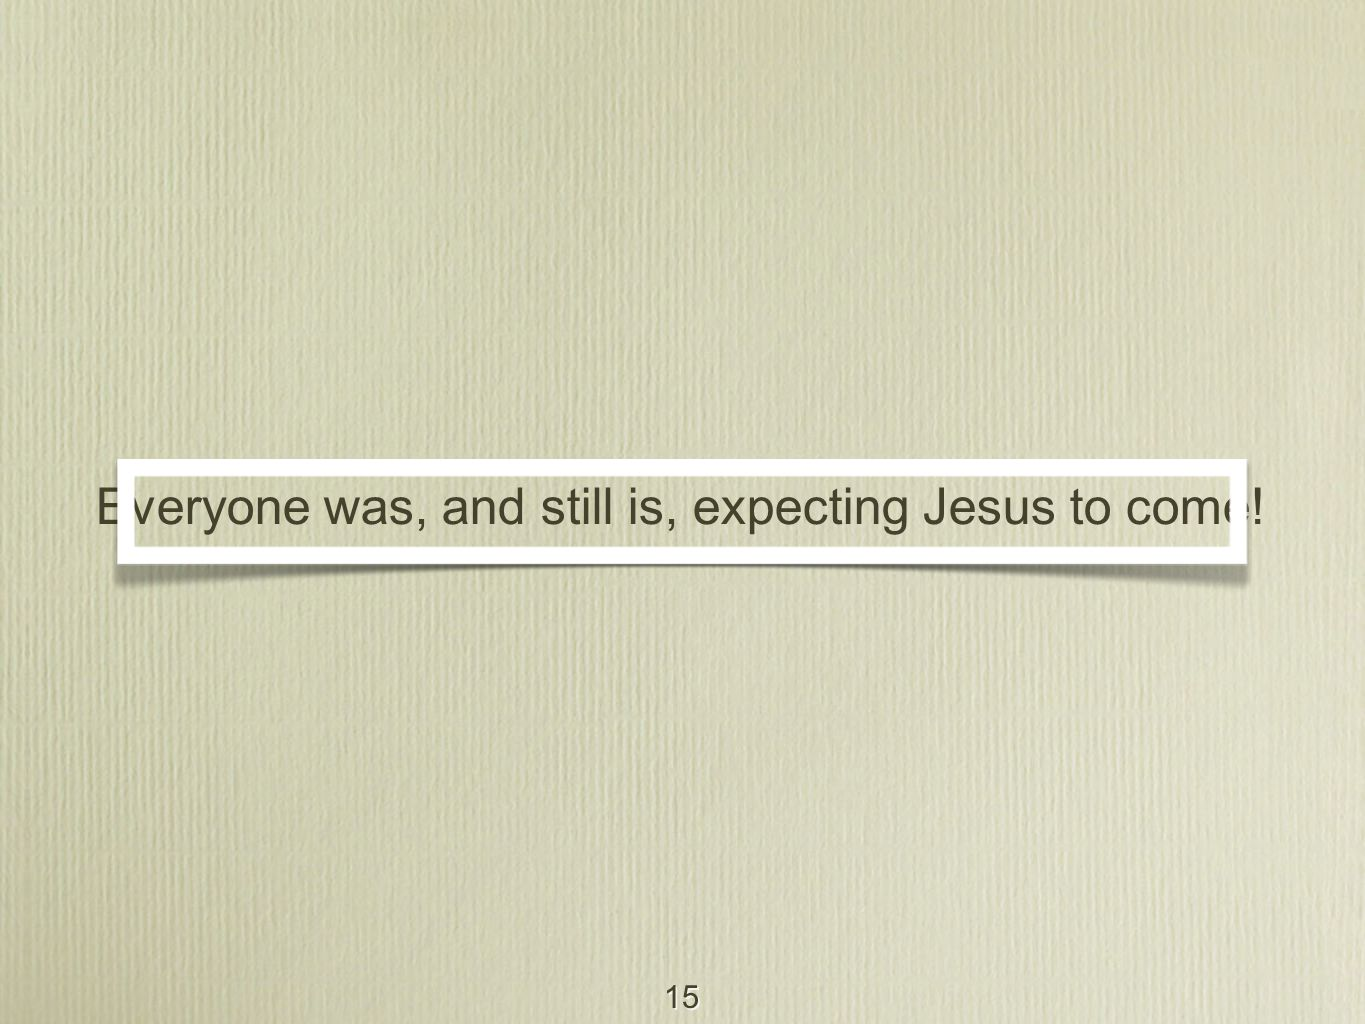 15 Everyone was, and still is, expecting Jesus to come!